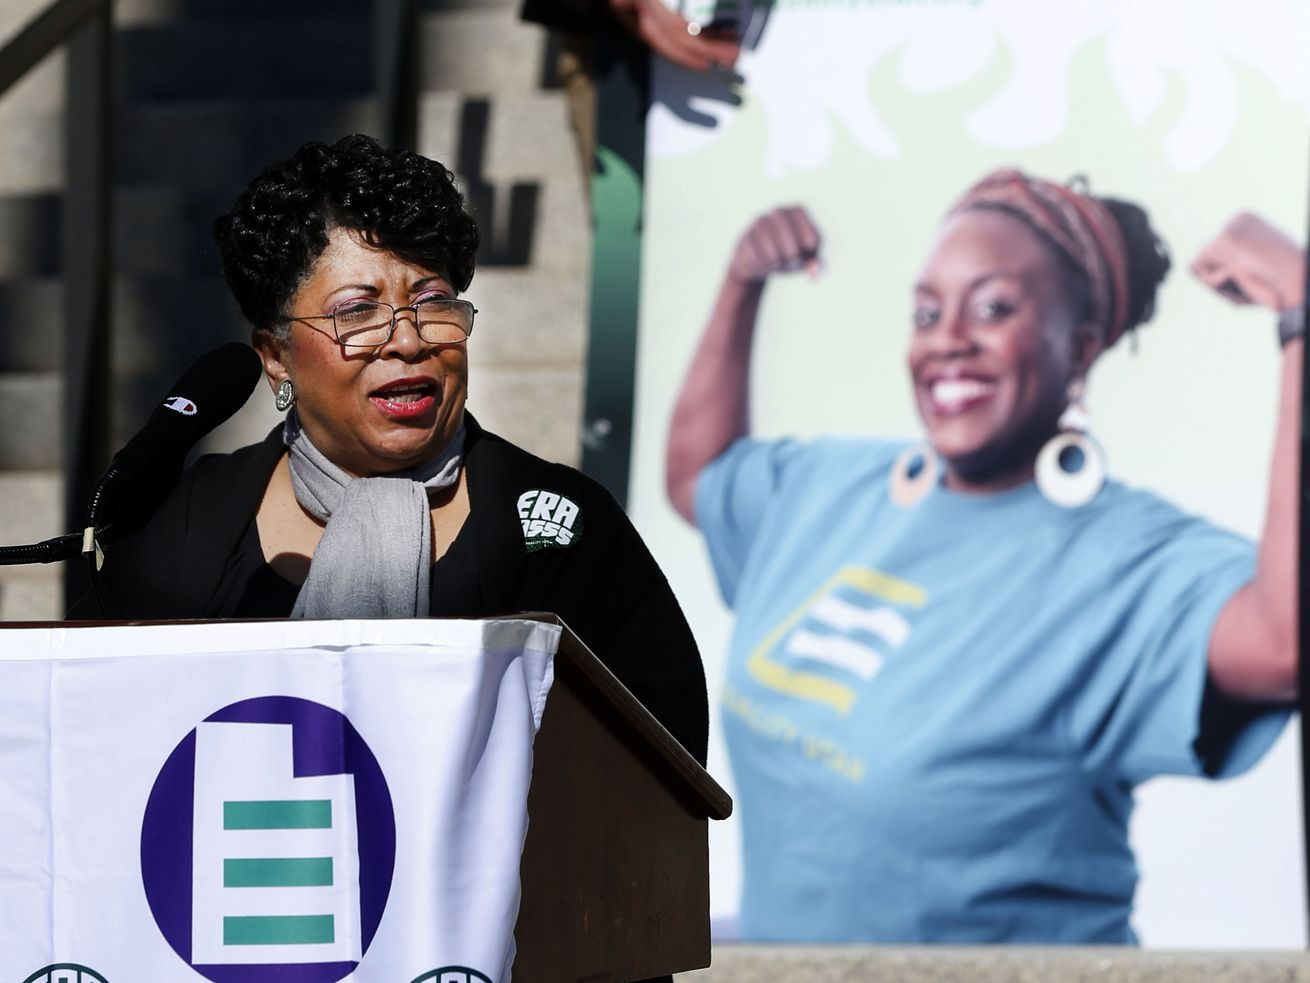 'No exceptions, no exclusions, no asterisks': Why these organizations are fighting for the Equal Rights Amendment